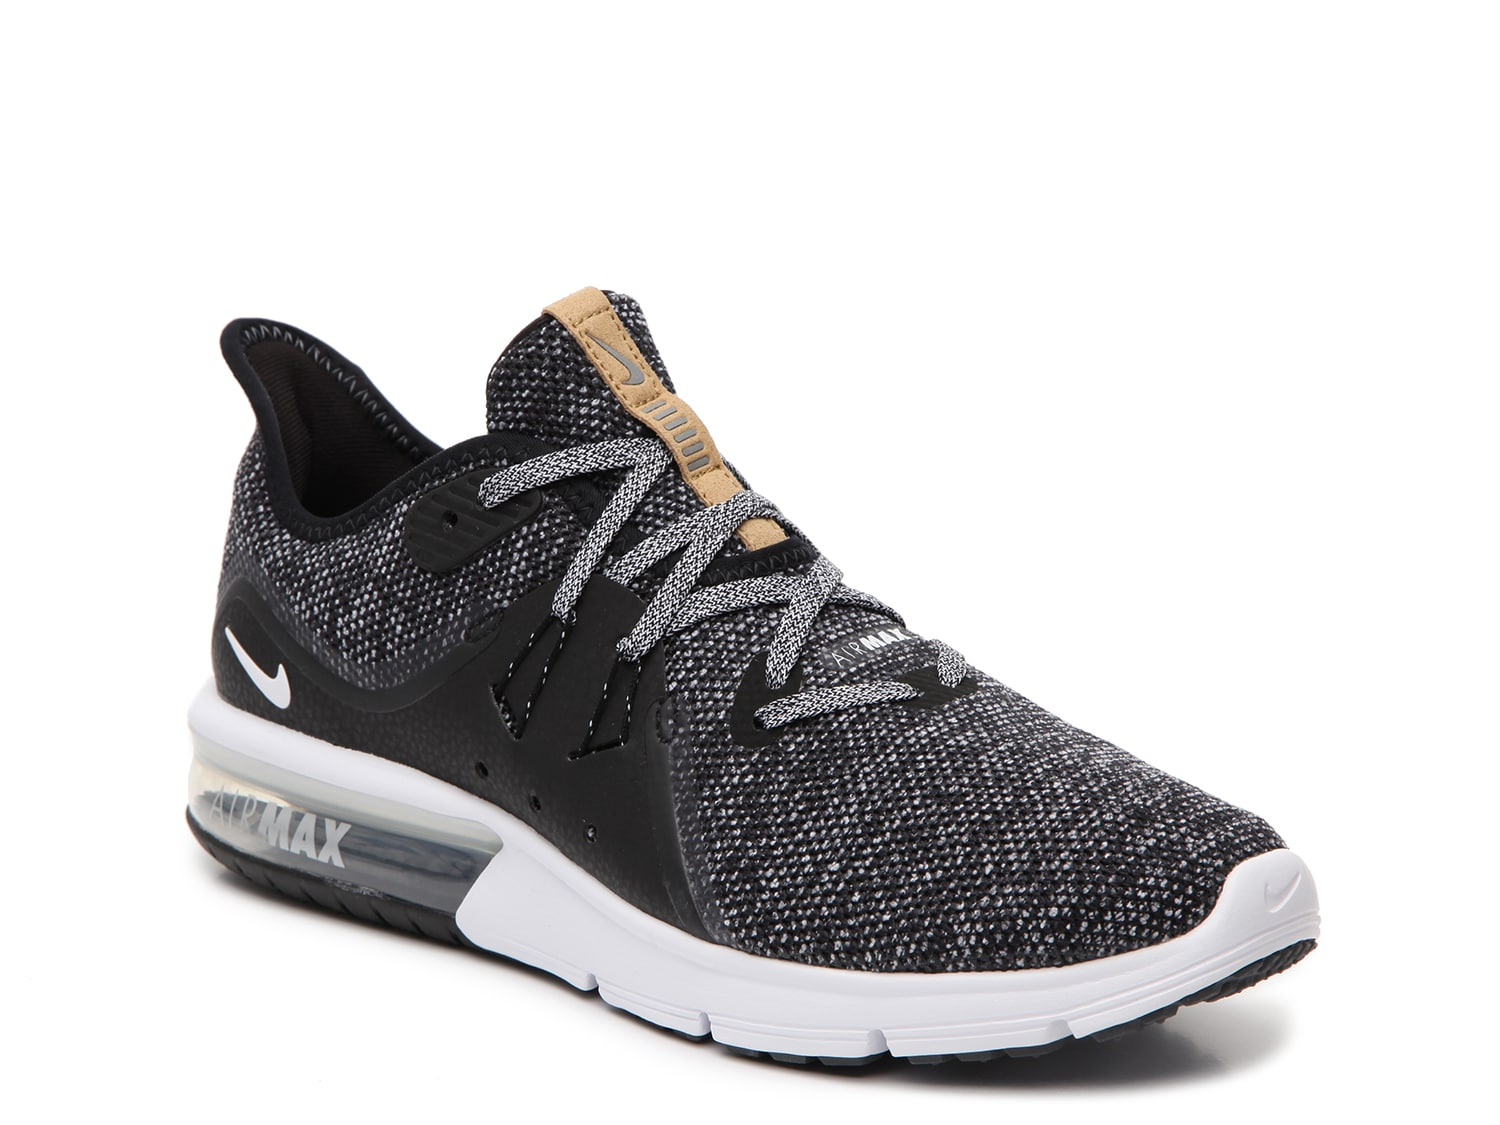 si puedes sacerdote Magistrado  Nike Air Max Sequent 3 Running Shoe - Women's Women's Shoes   DSW